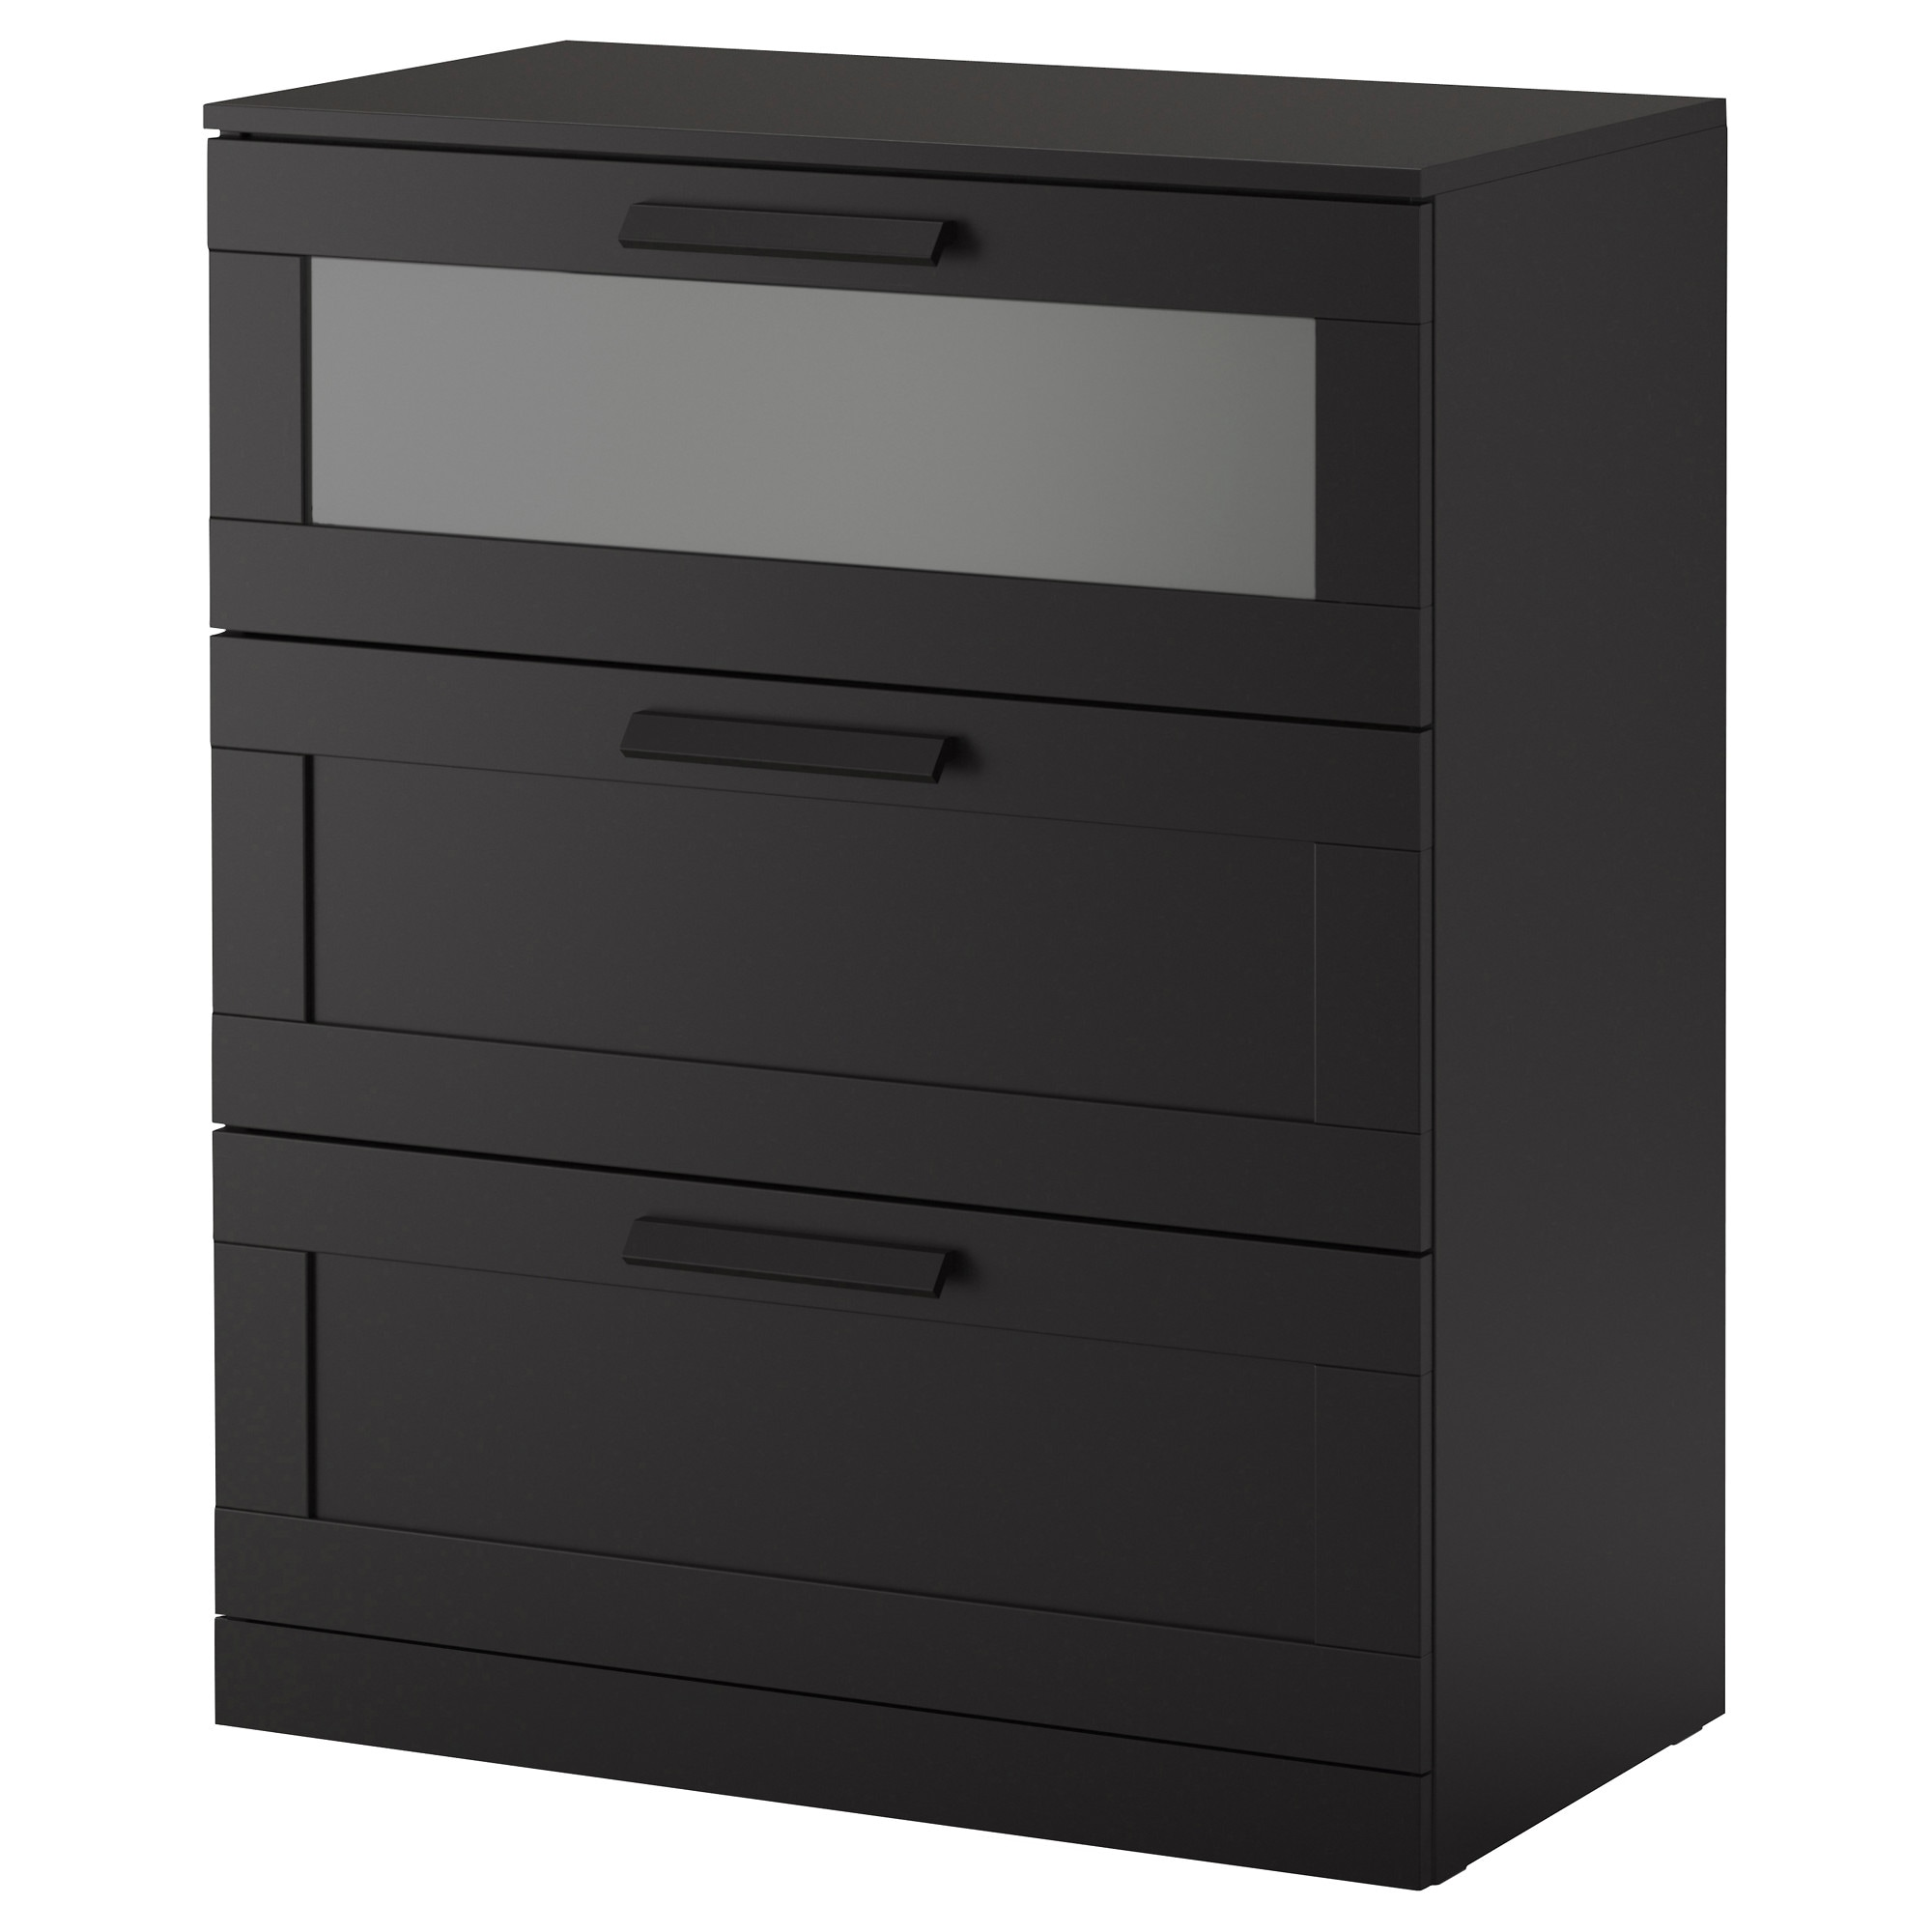 tall black dresser ikea bestdressers 2017. Black Bedroom Furniture Sets. Home Design Ideas